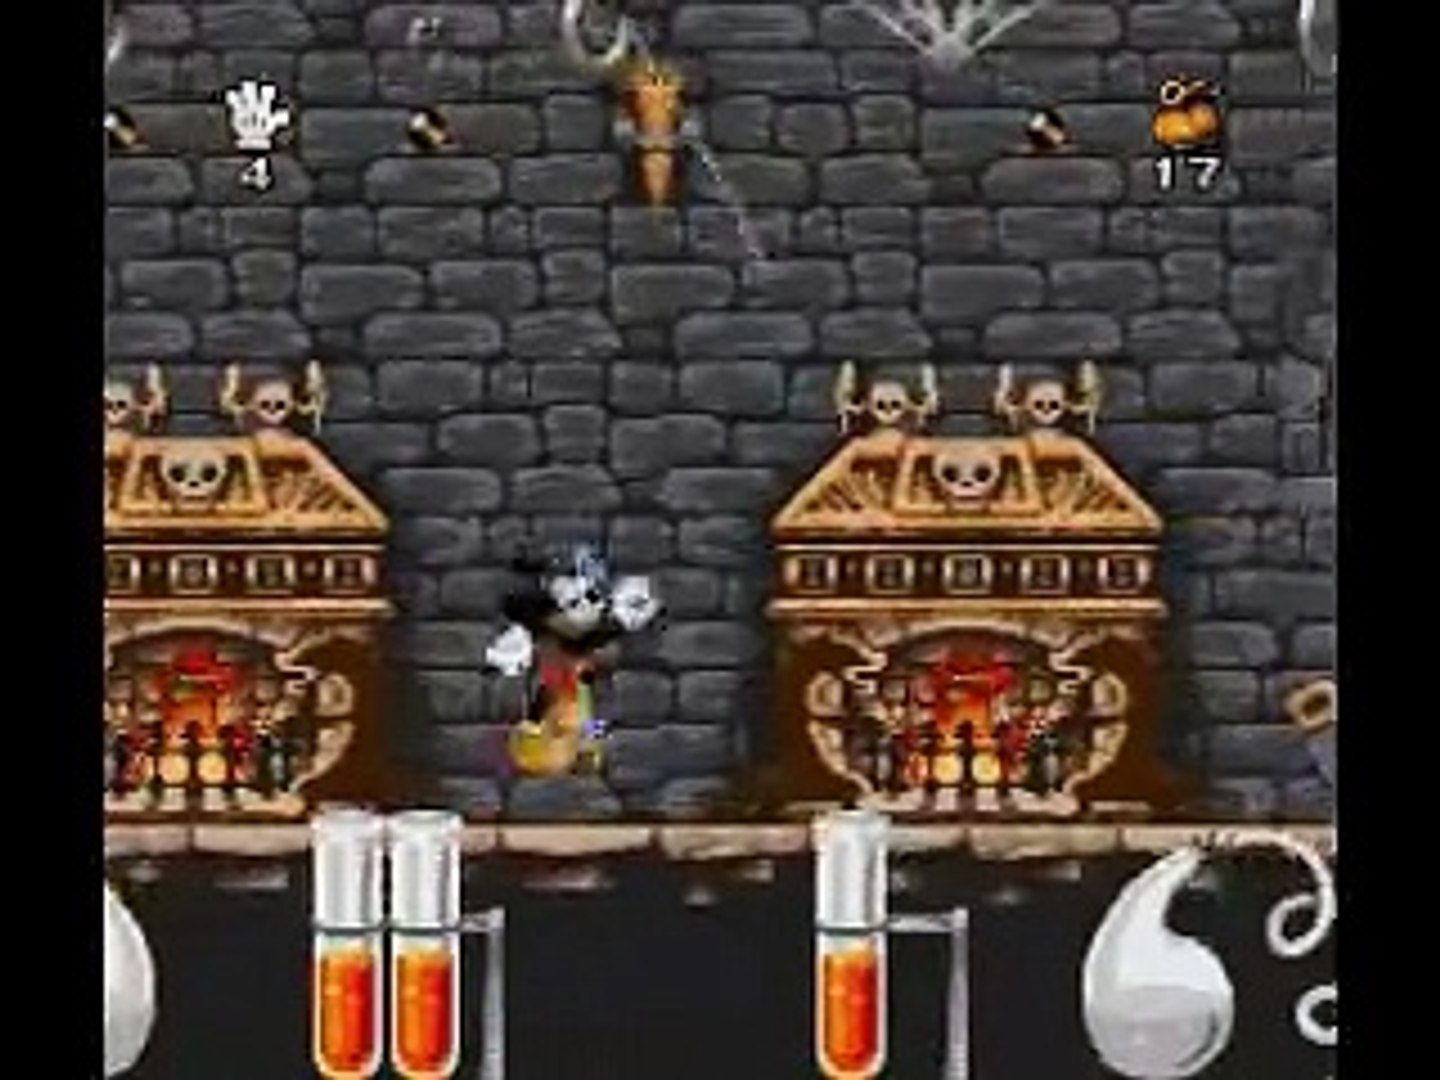 Mickey Mania SNES - Cartoon 2 (The Mad Doctor) (Dubbed With Genesis Music Version 1)